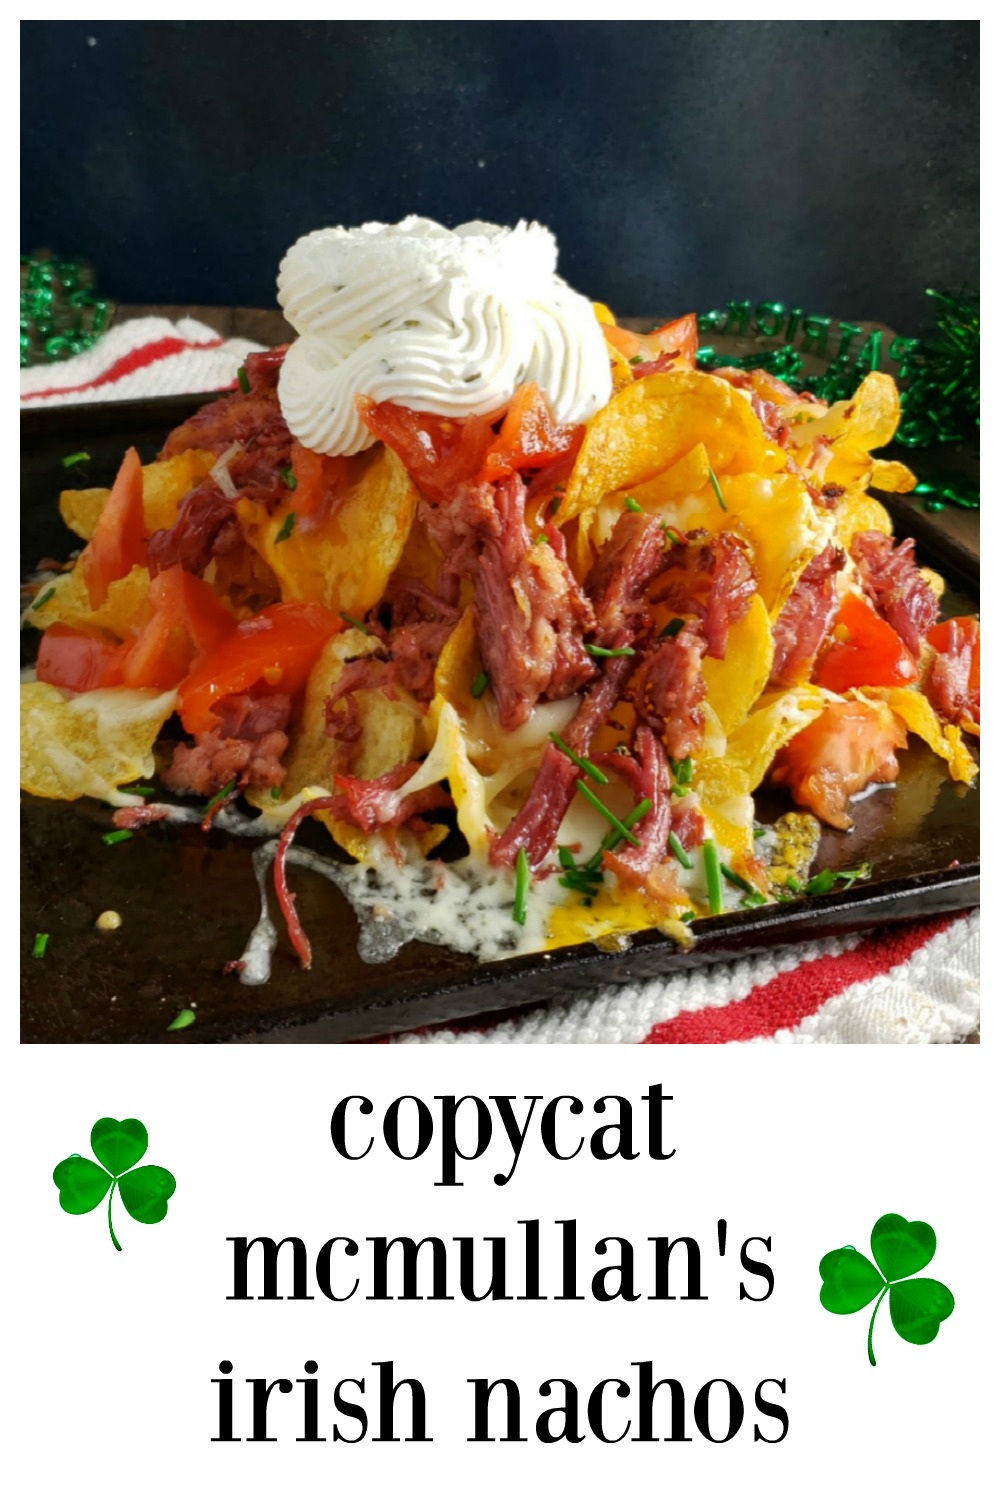 McMullan's Irish Nachos. These are crispy, crunchy homemade potato chips (or use kettle chips) loaded with cheese, crisped corned beef (or taco meat, chicken, carnitas, bacon) Sour Cream, tomatoes, chives. Add pickled jalapenos and lime if ya want! They're insane! #Nachos #IrishNachos #McMullansIrishNachos #PotatoNachos #CornedBeefNachos #MegaDopeChos #CornedBeef #LeftoverCornedBeef #StPaddysDayRecipes #IrishFood